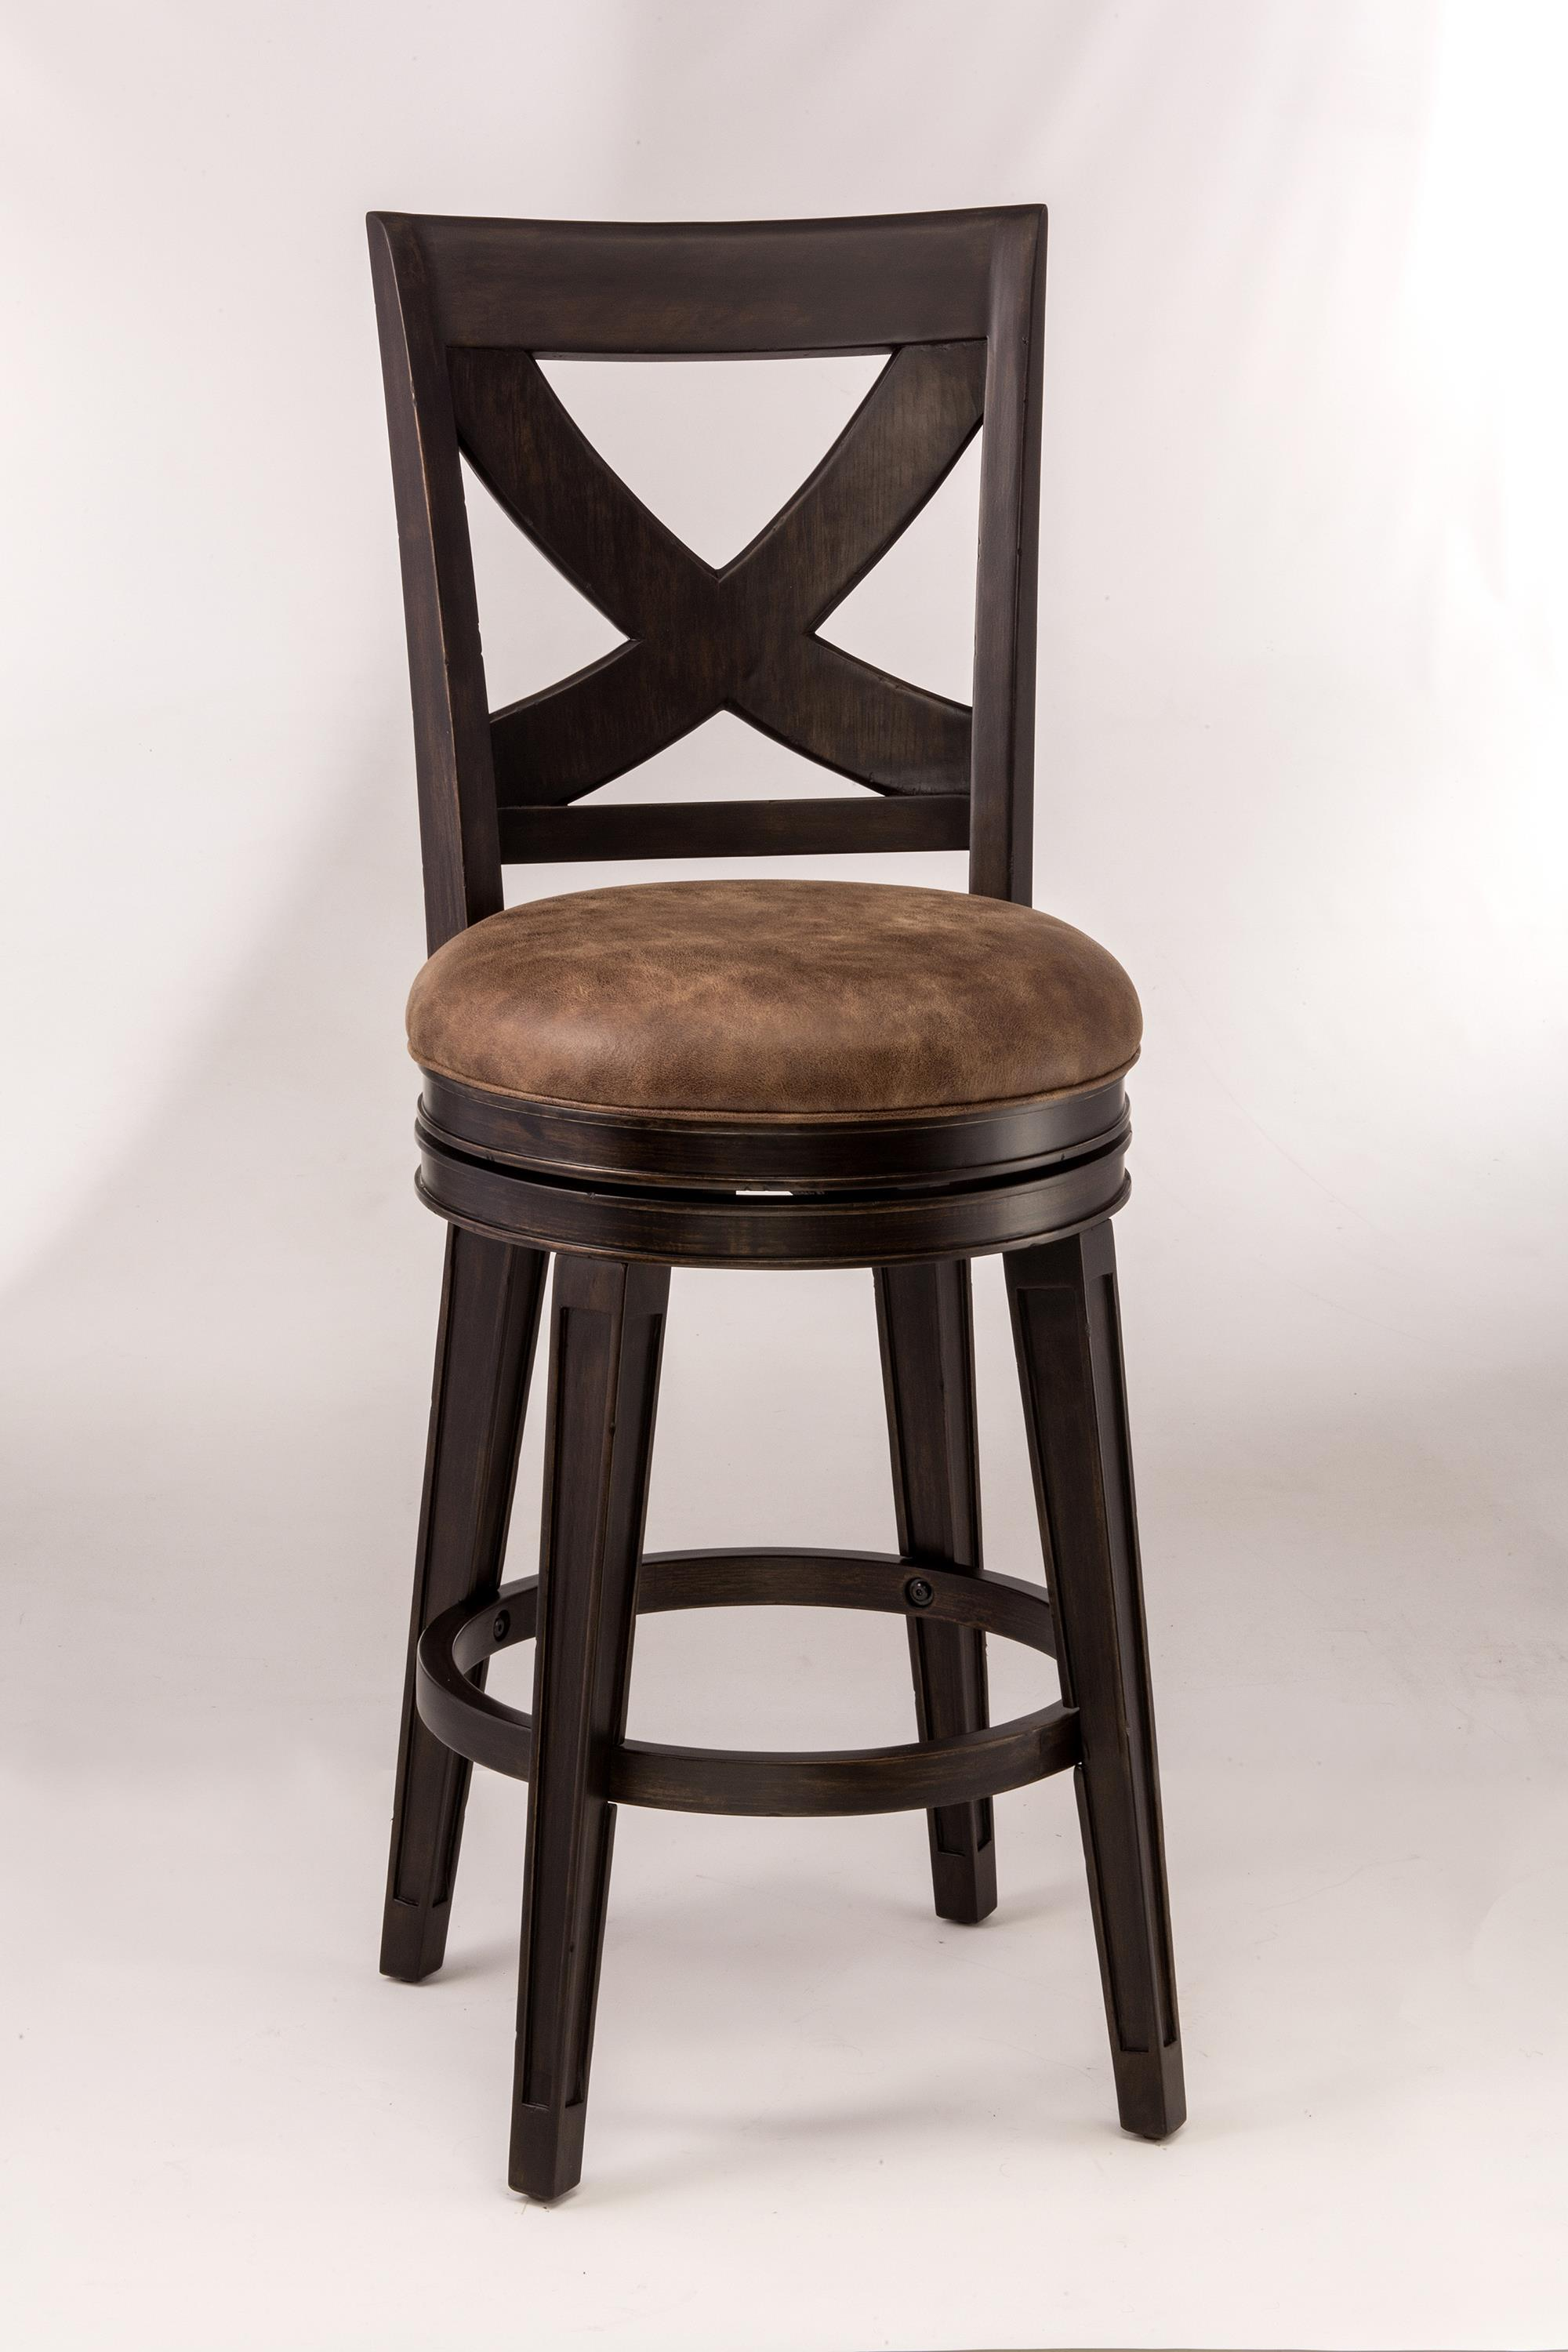 Hillsdale Metal Stools Swivel Counter Stool - Item Number: 5890-826